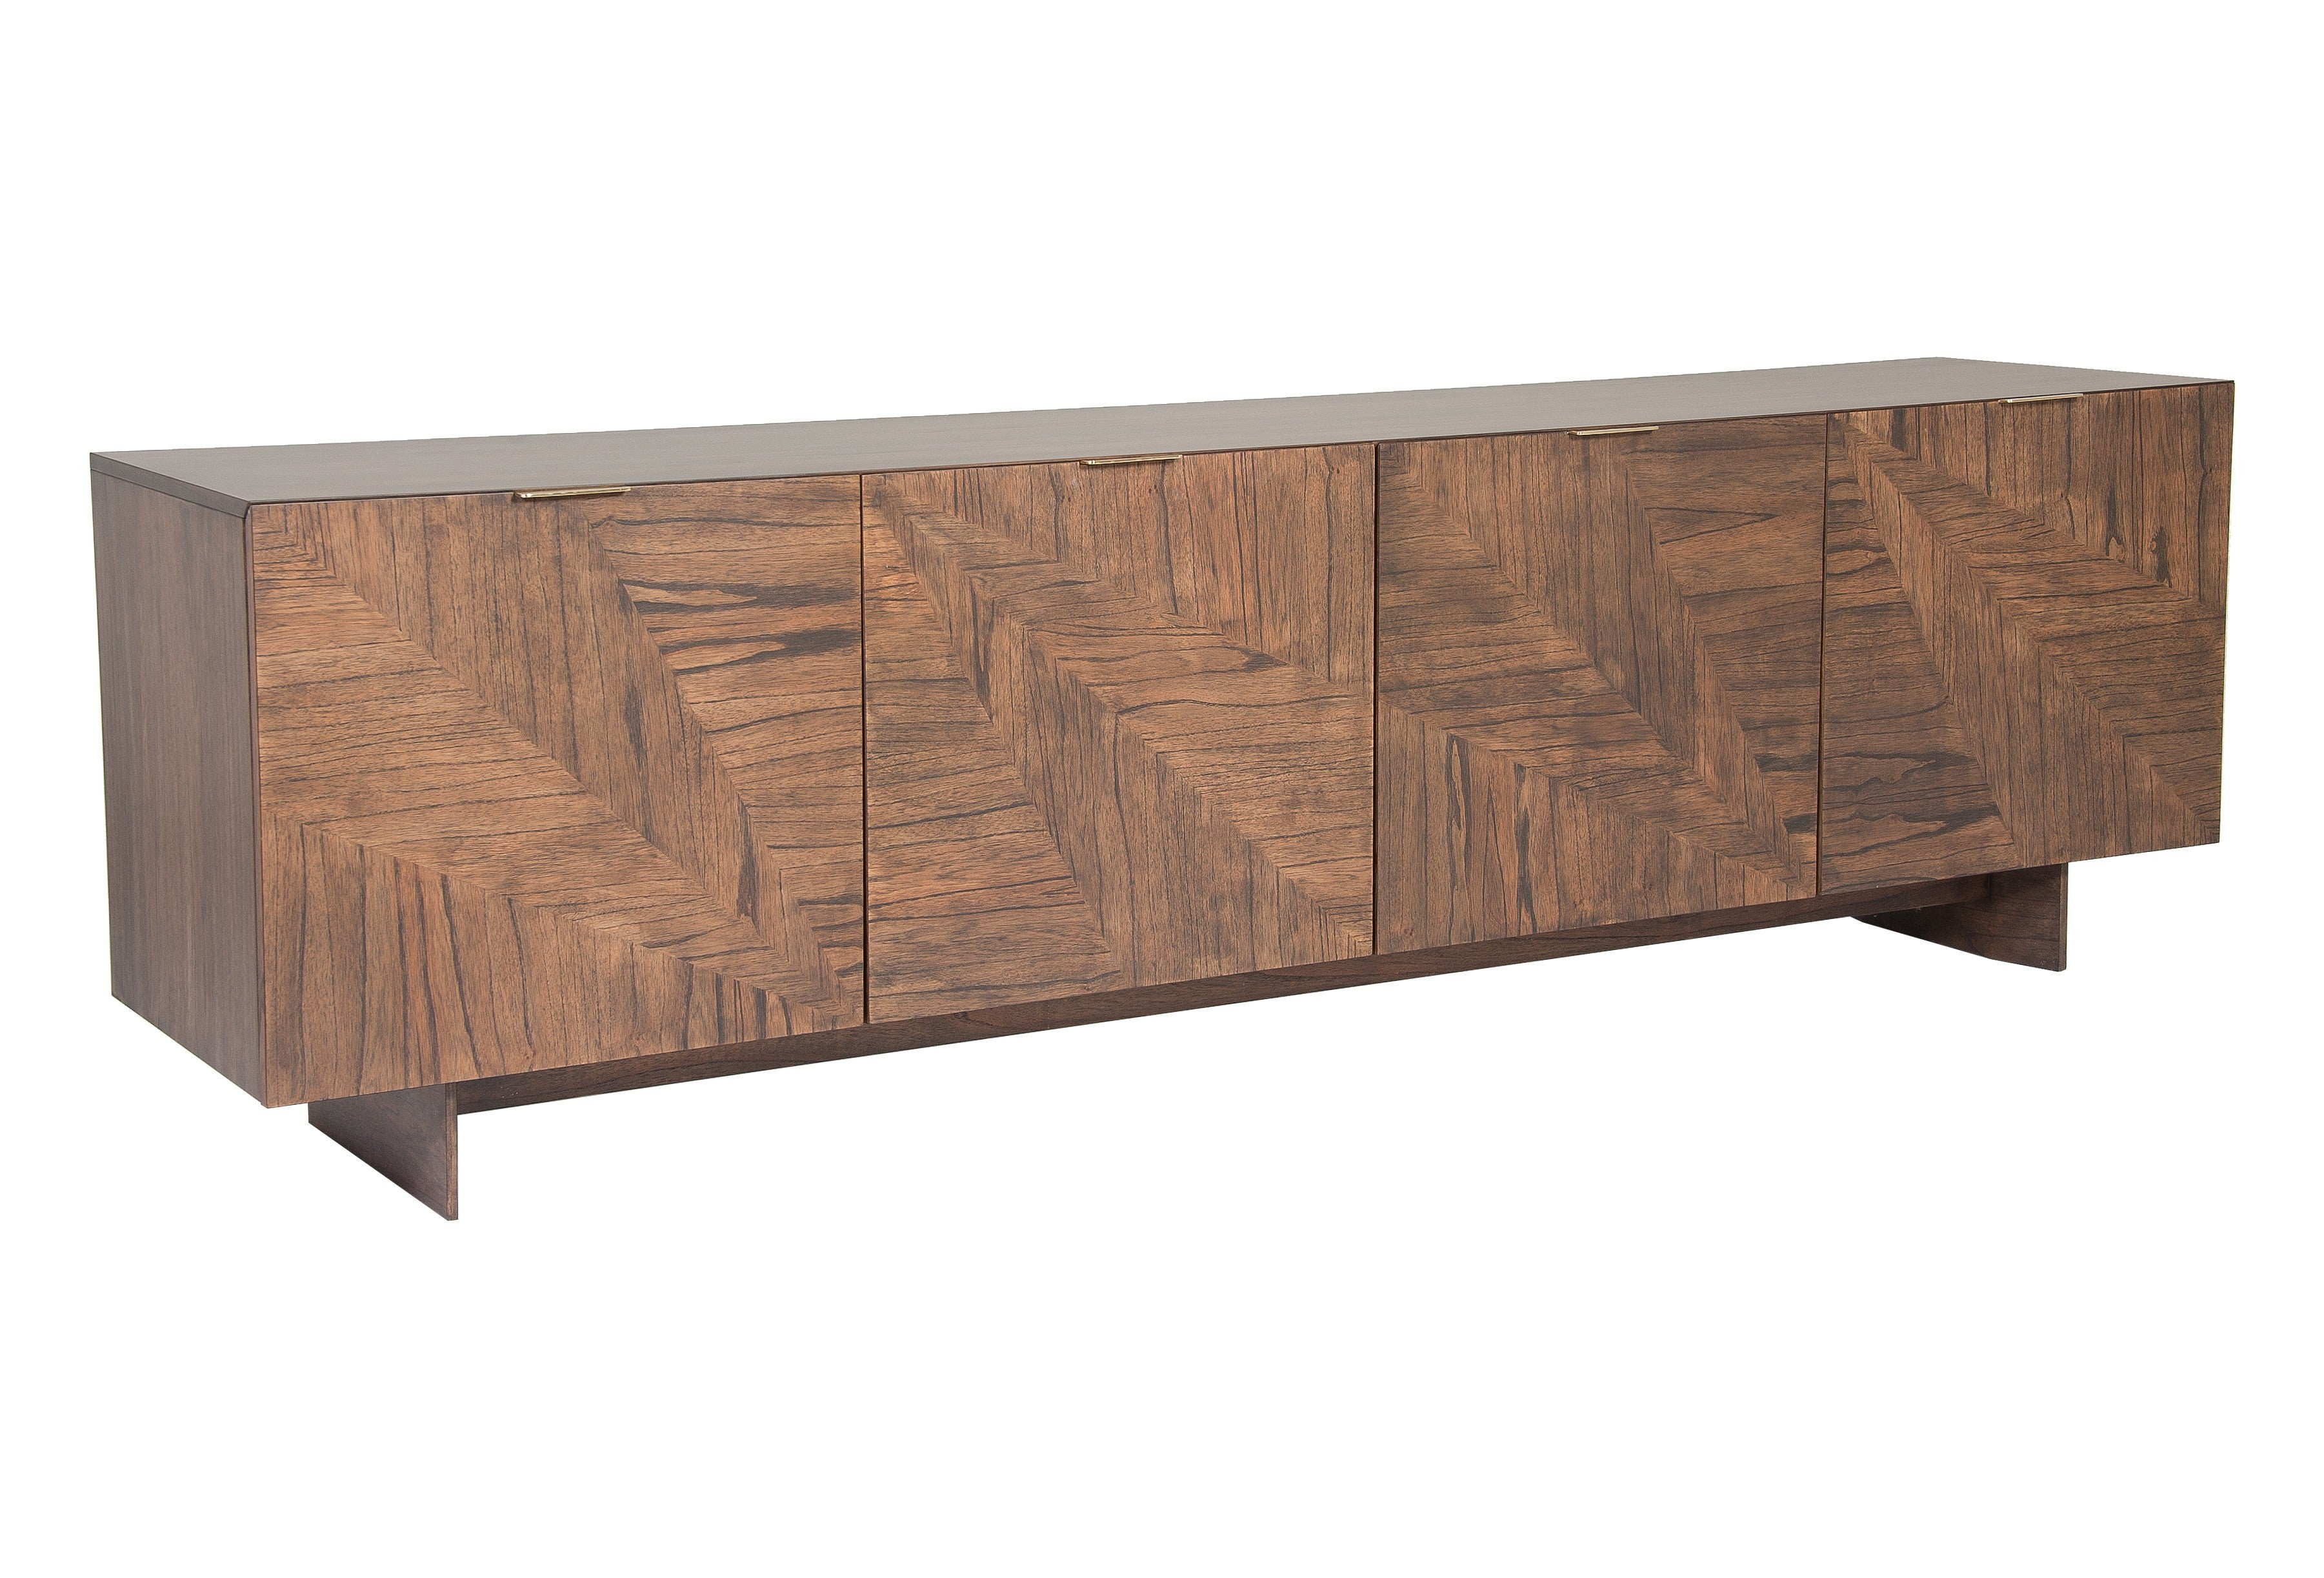 Folhas sideboard/credenza by Leandro Garcia - Kelly Christian Designs